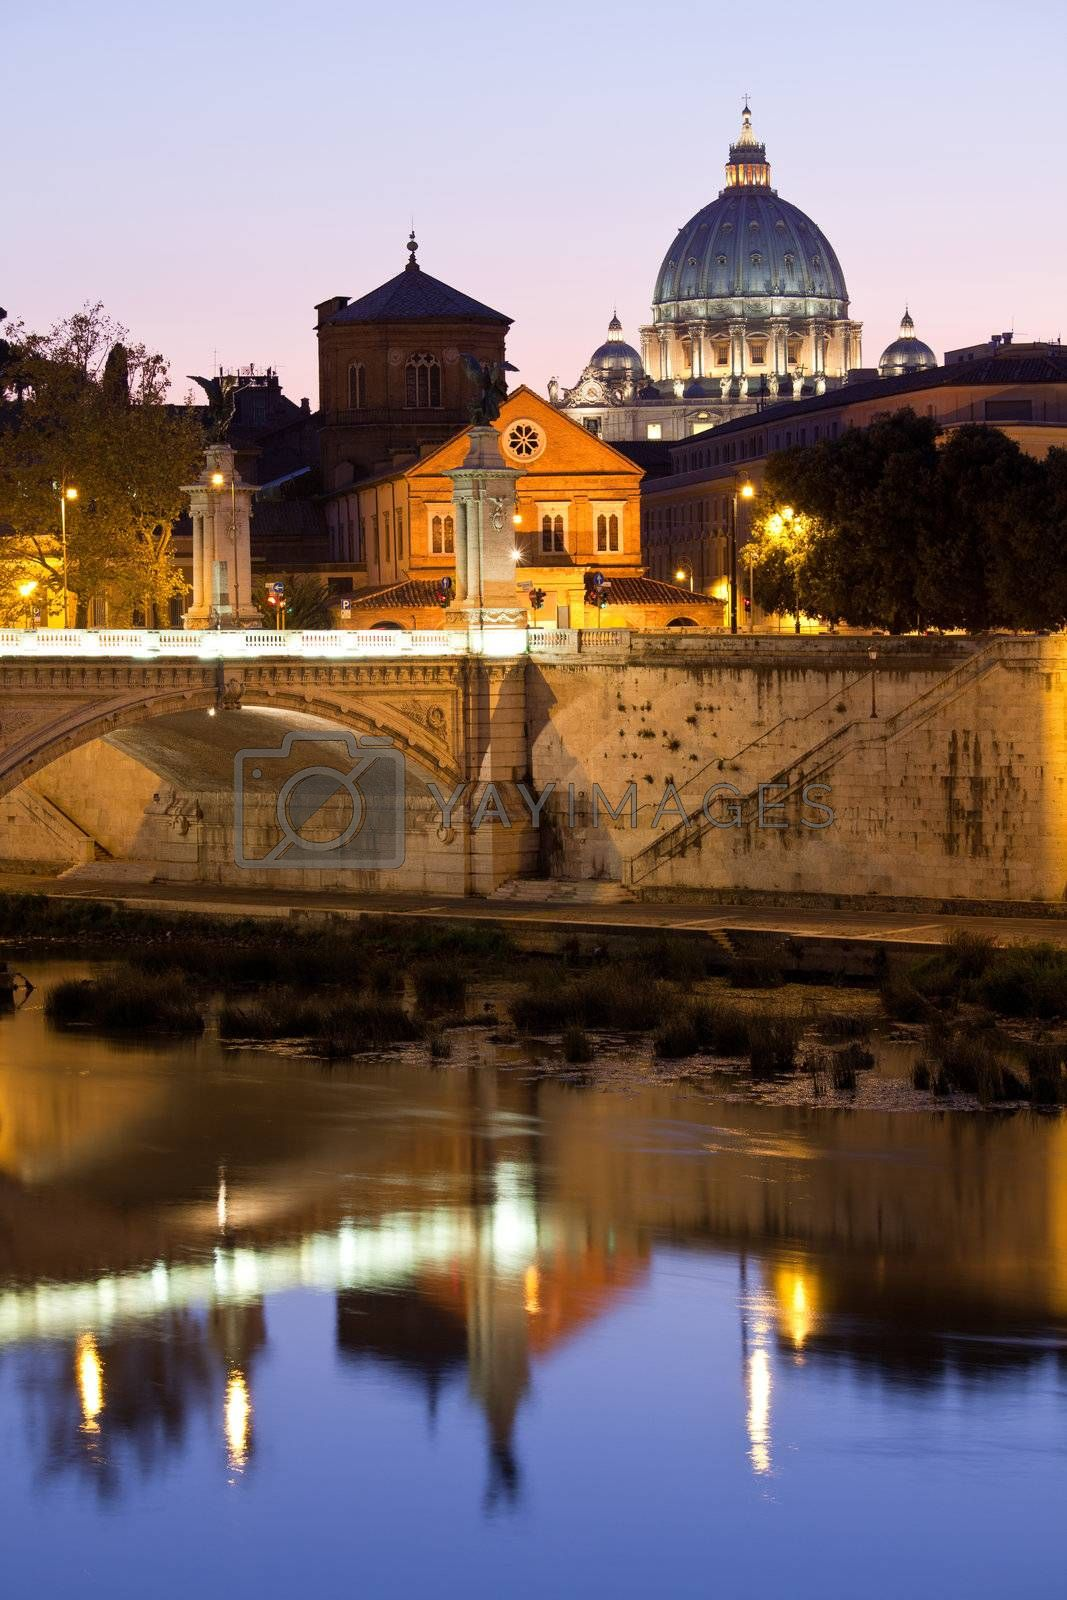 Saint Peter's Basilica Rome Italy on Tiber bank in evening by SergeyAK